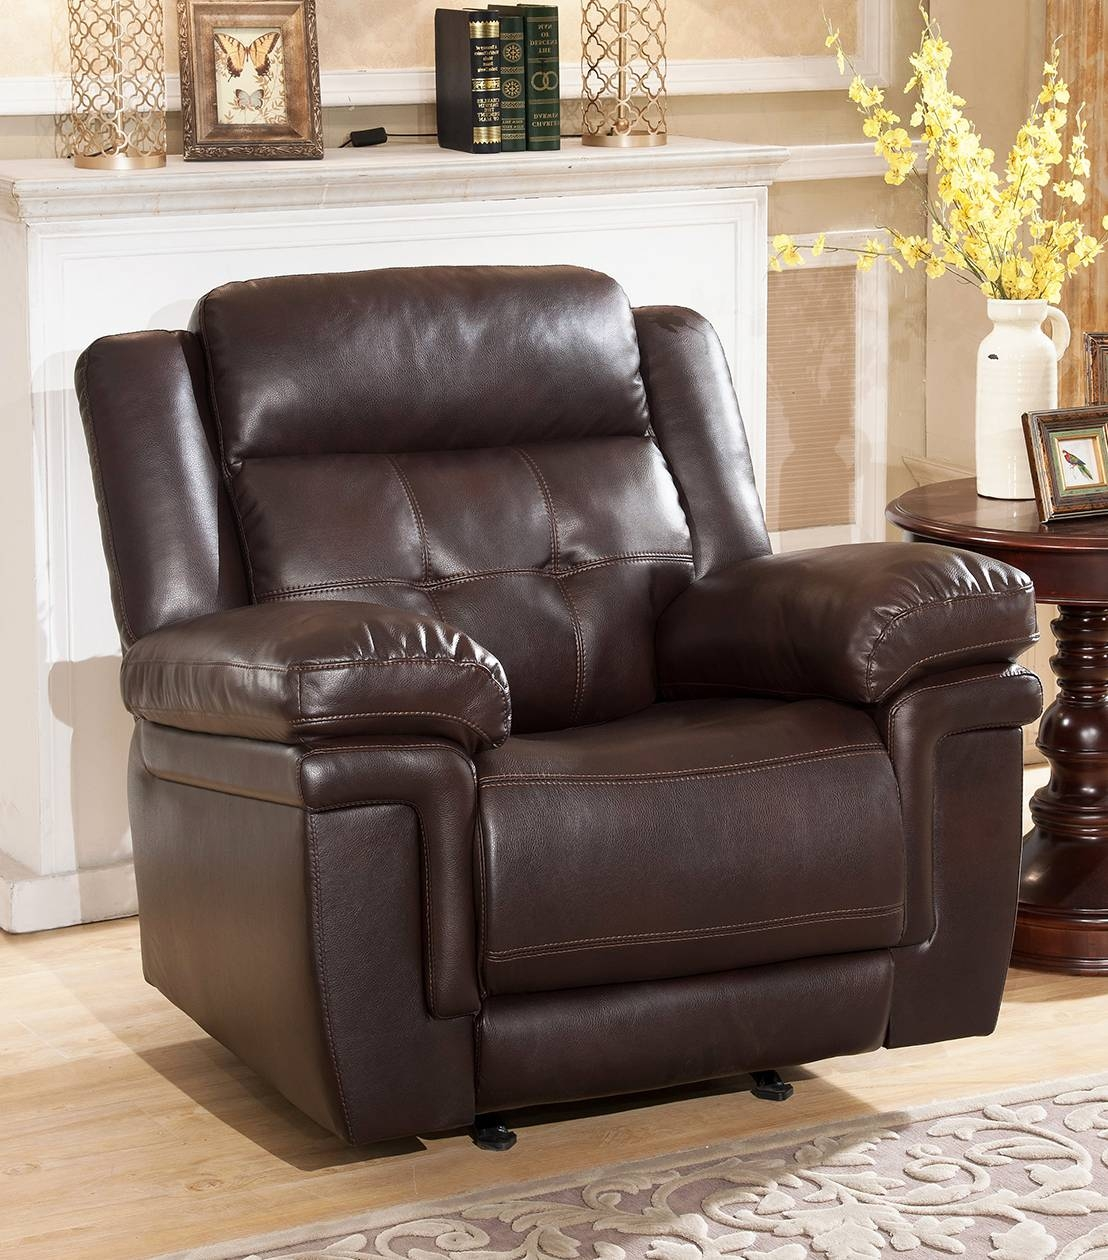 Recliners : Carly Leather Rocker Recliner With Abbyson Recliners (View 9 of 15)